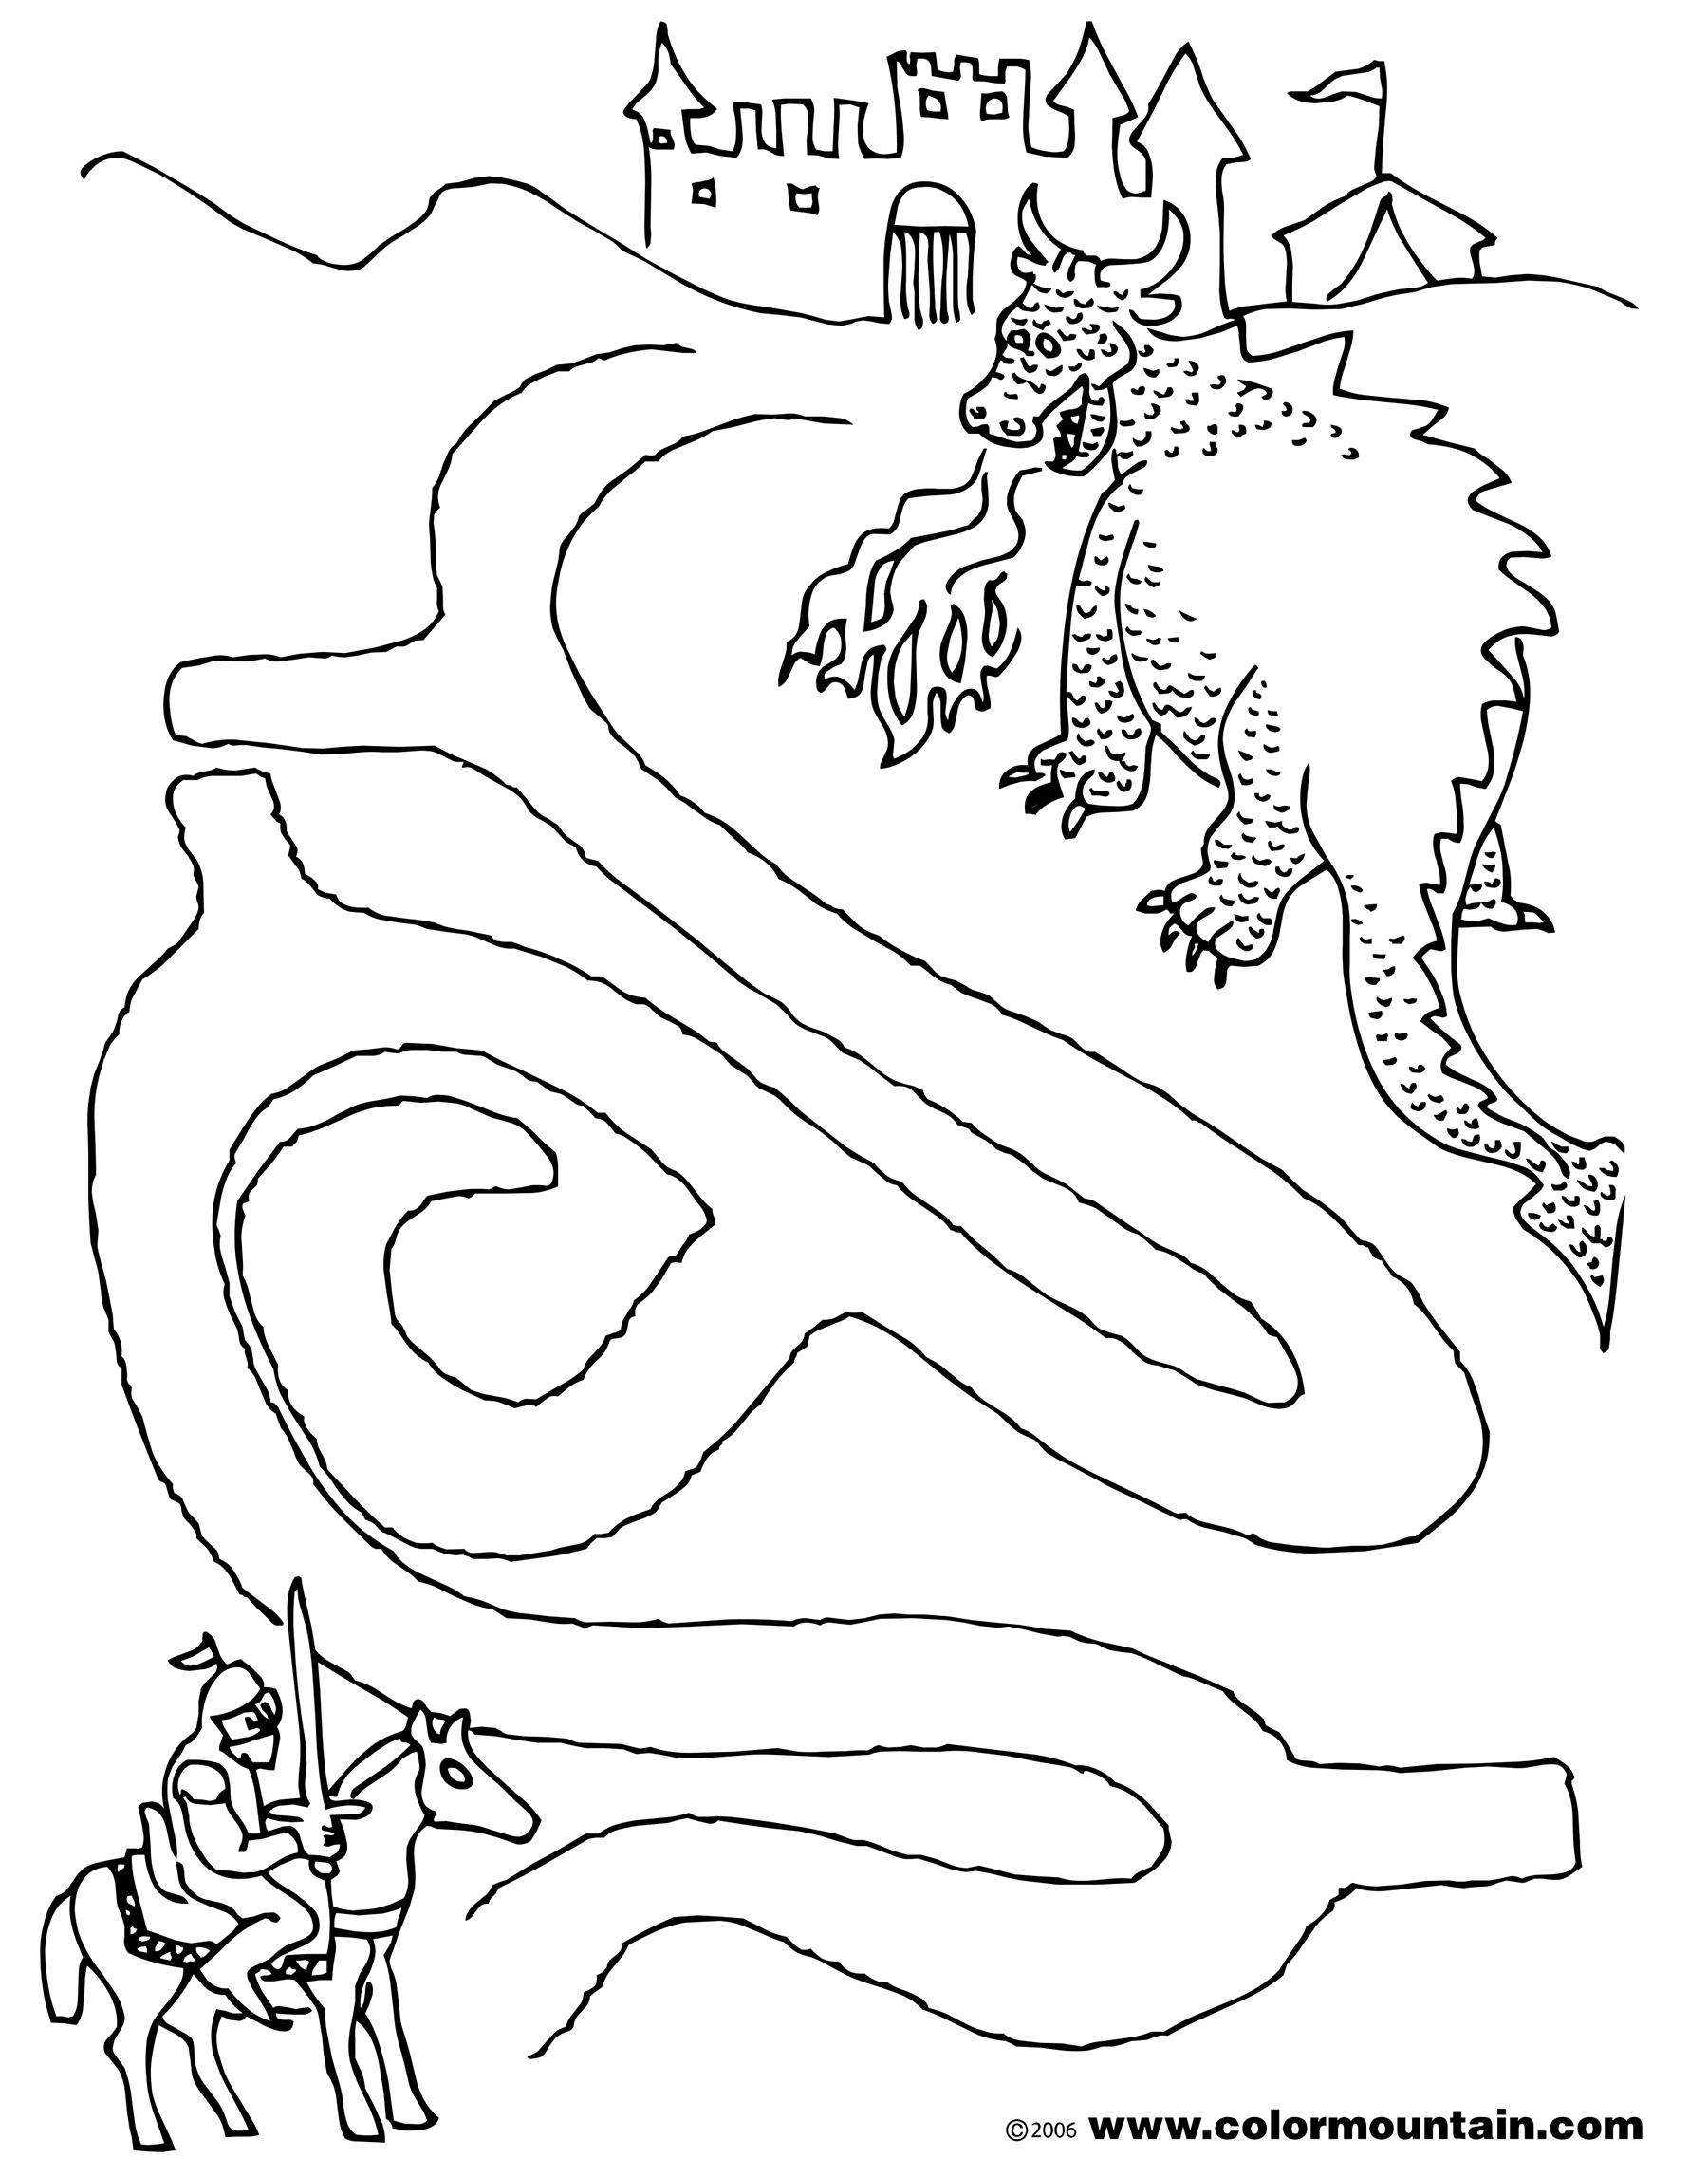 4 Images of Dragon Maze Printable Coloring Pages